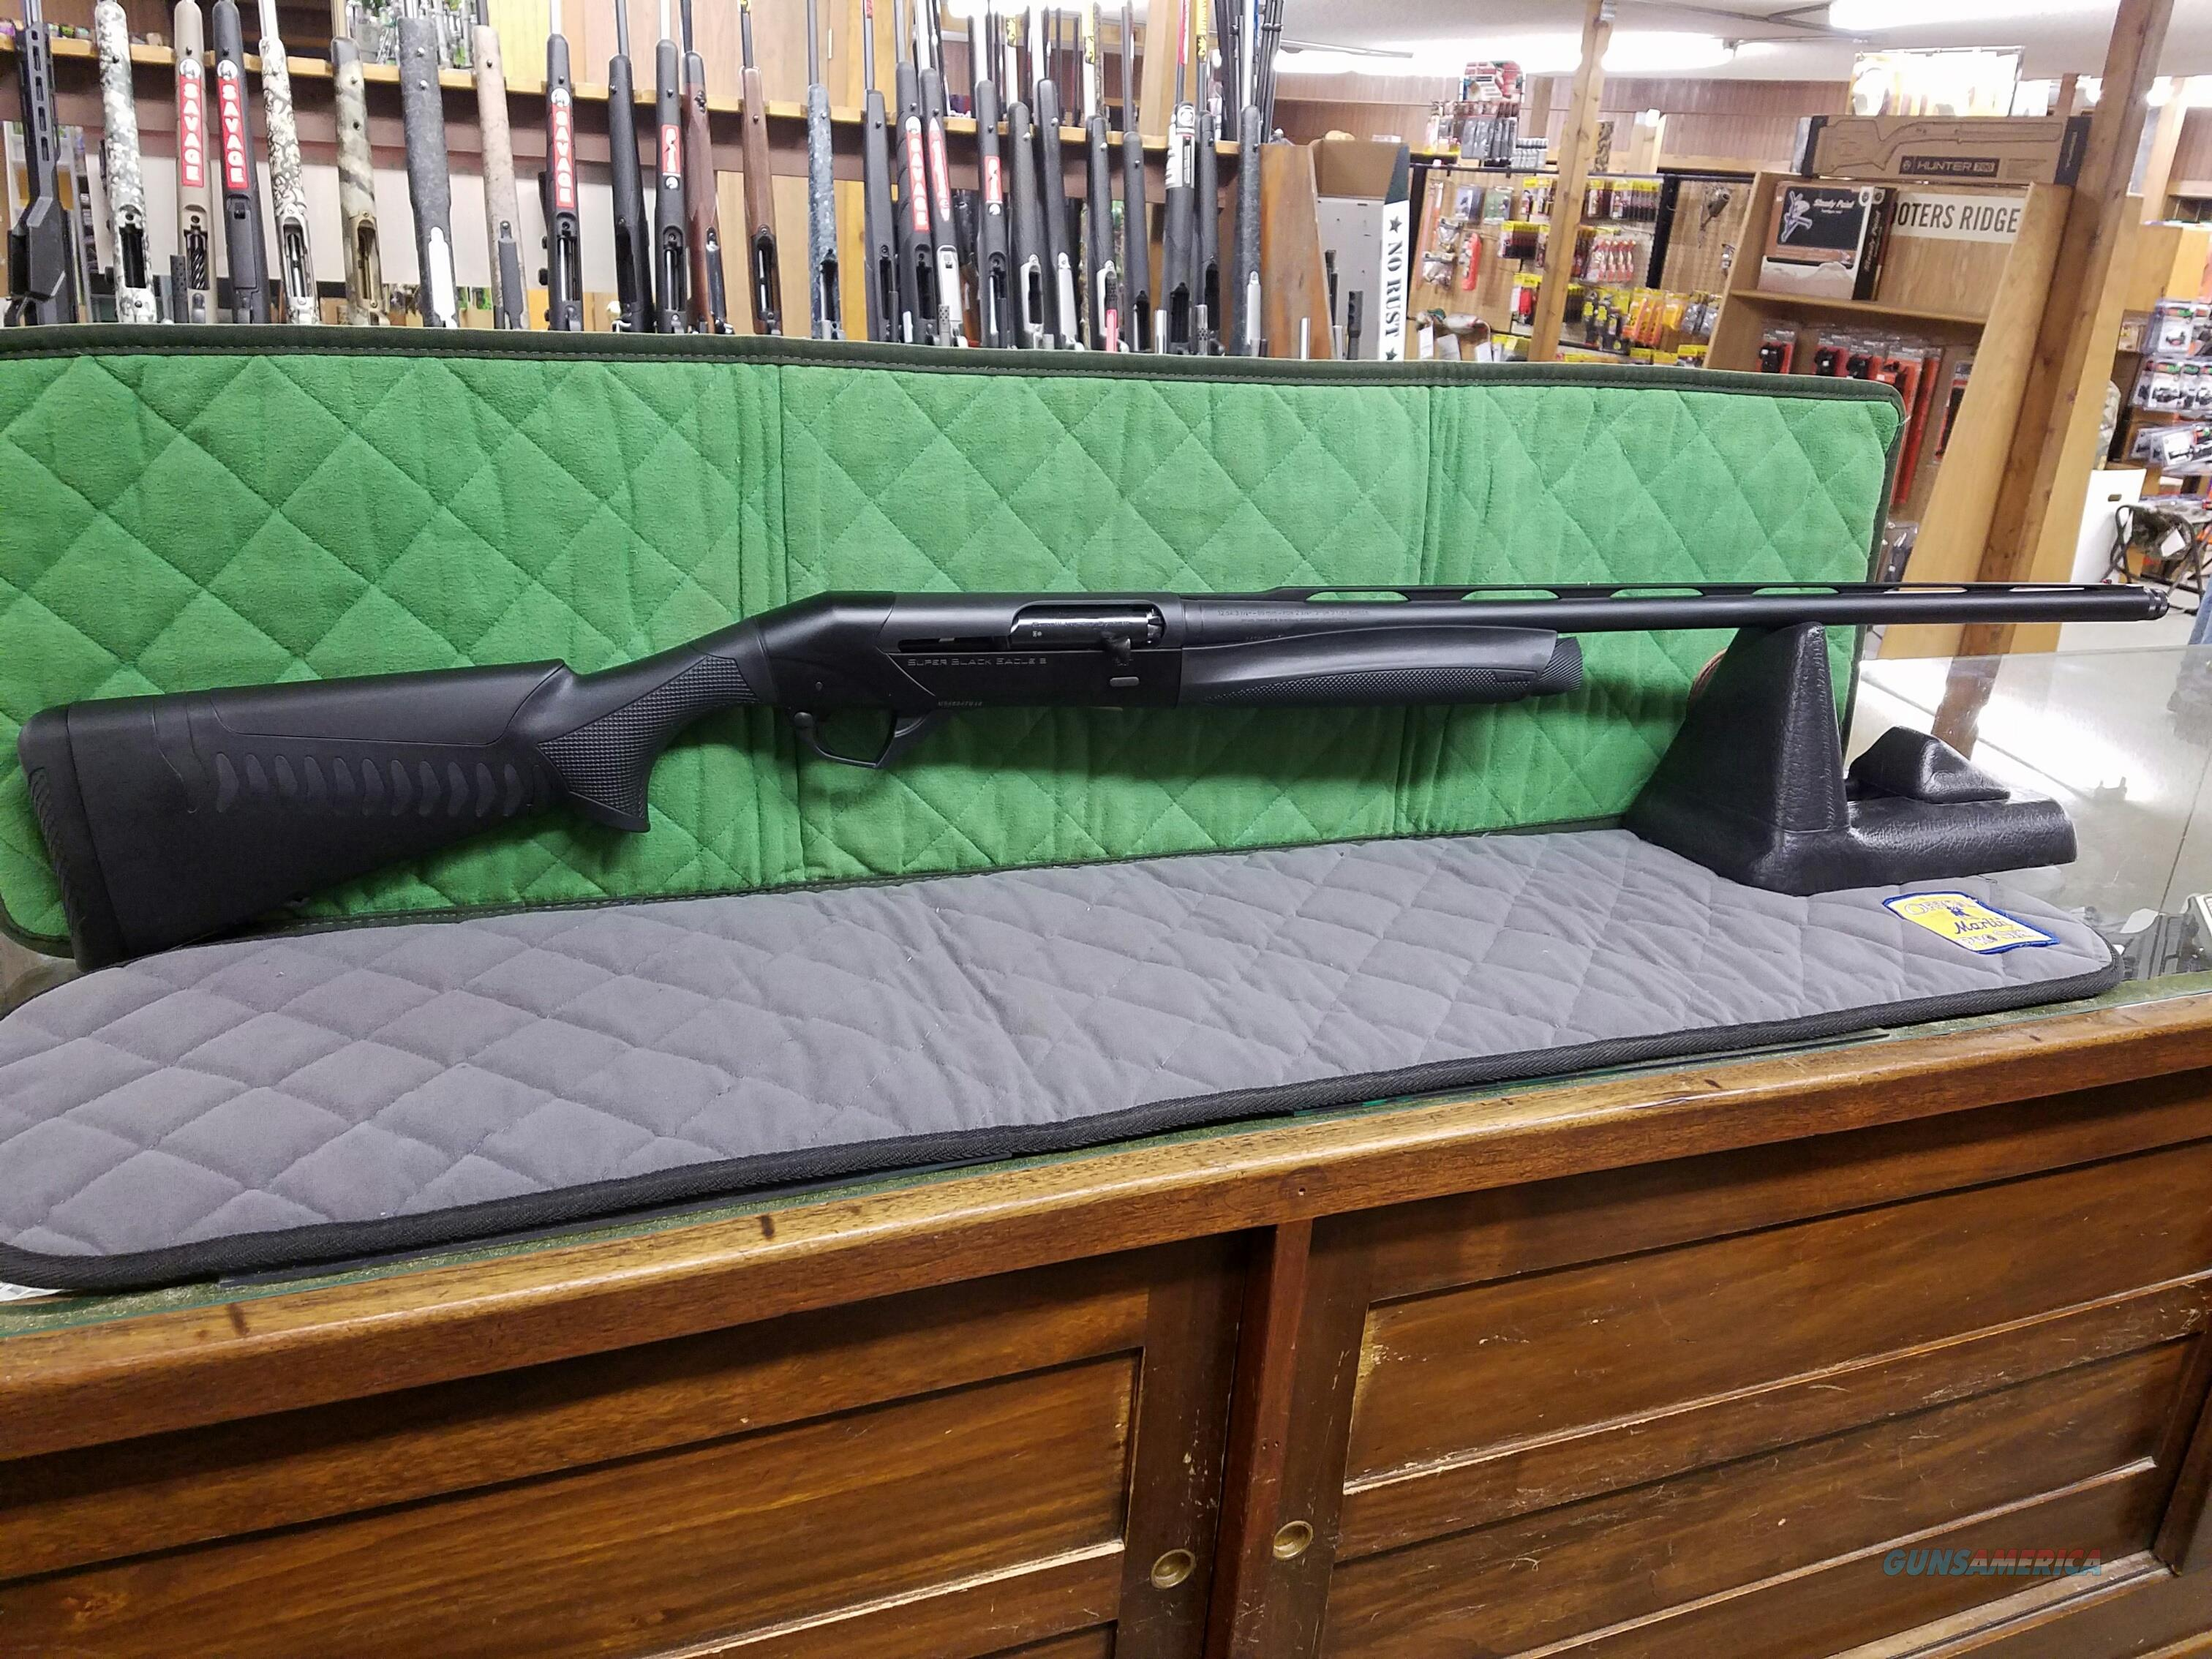 Benelli Super Black Eagle 3 12 Gauge 28 Inch #10316  **NEW**  Guns > Shotguns > Benelli Shotguns > Sporting